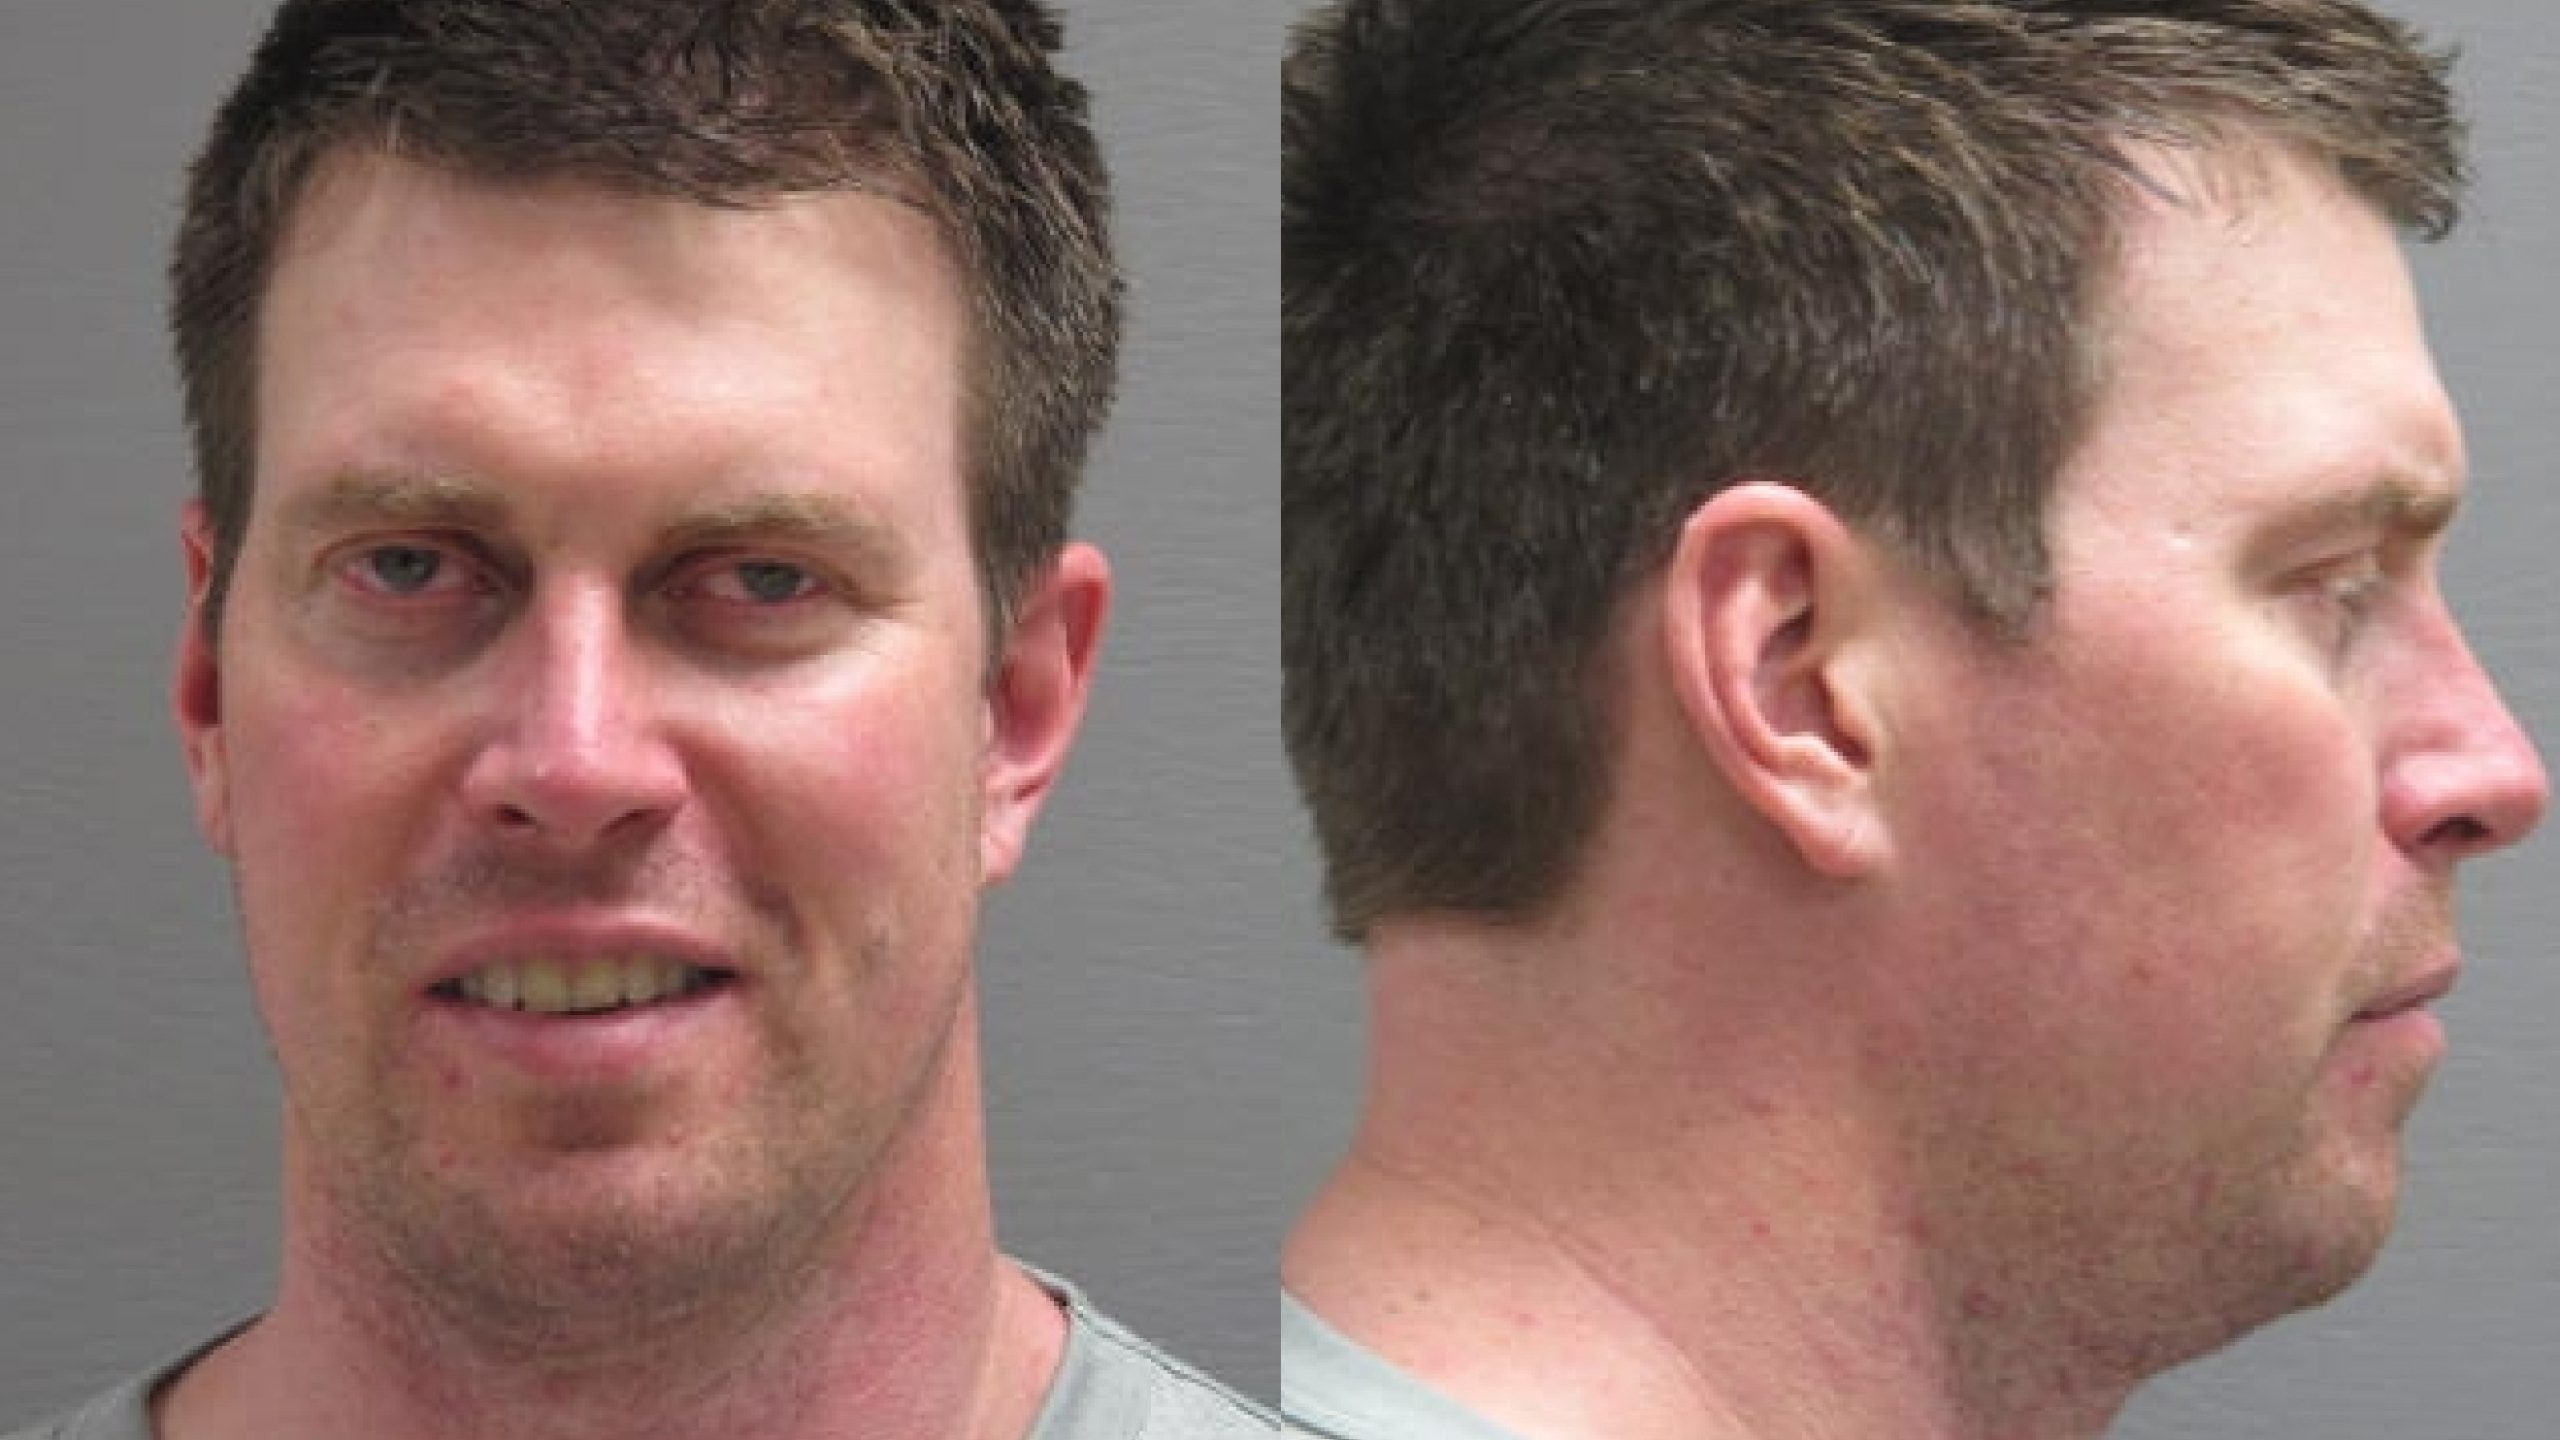 In this handout image provided by the Cascade County Sheriff's Office, former NFL quarterback Ryan Leaf is seen in a police booking photo April 2, 2012 in Great Falls, Montana. (Cascade County Sheriff's Office via Getty Images)